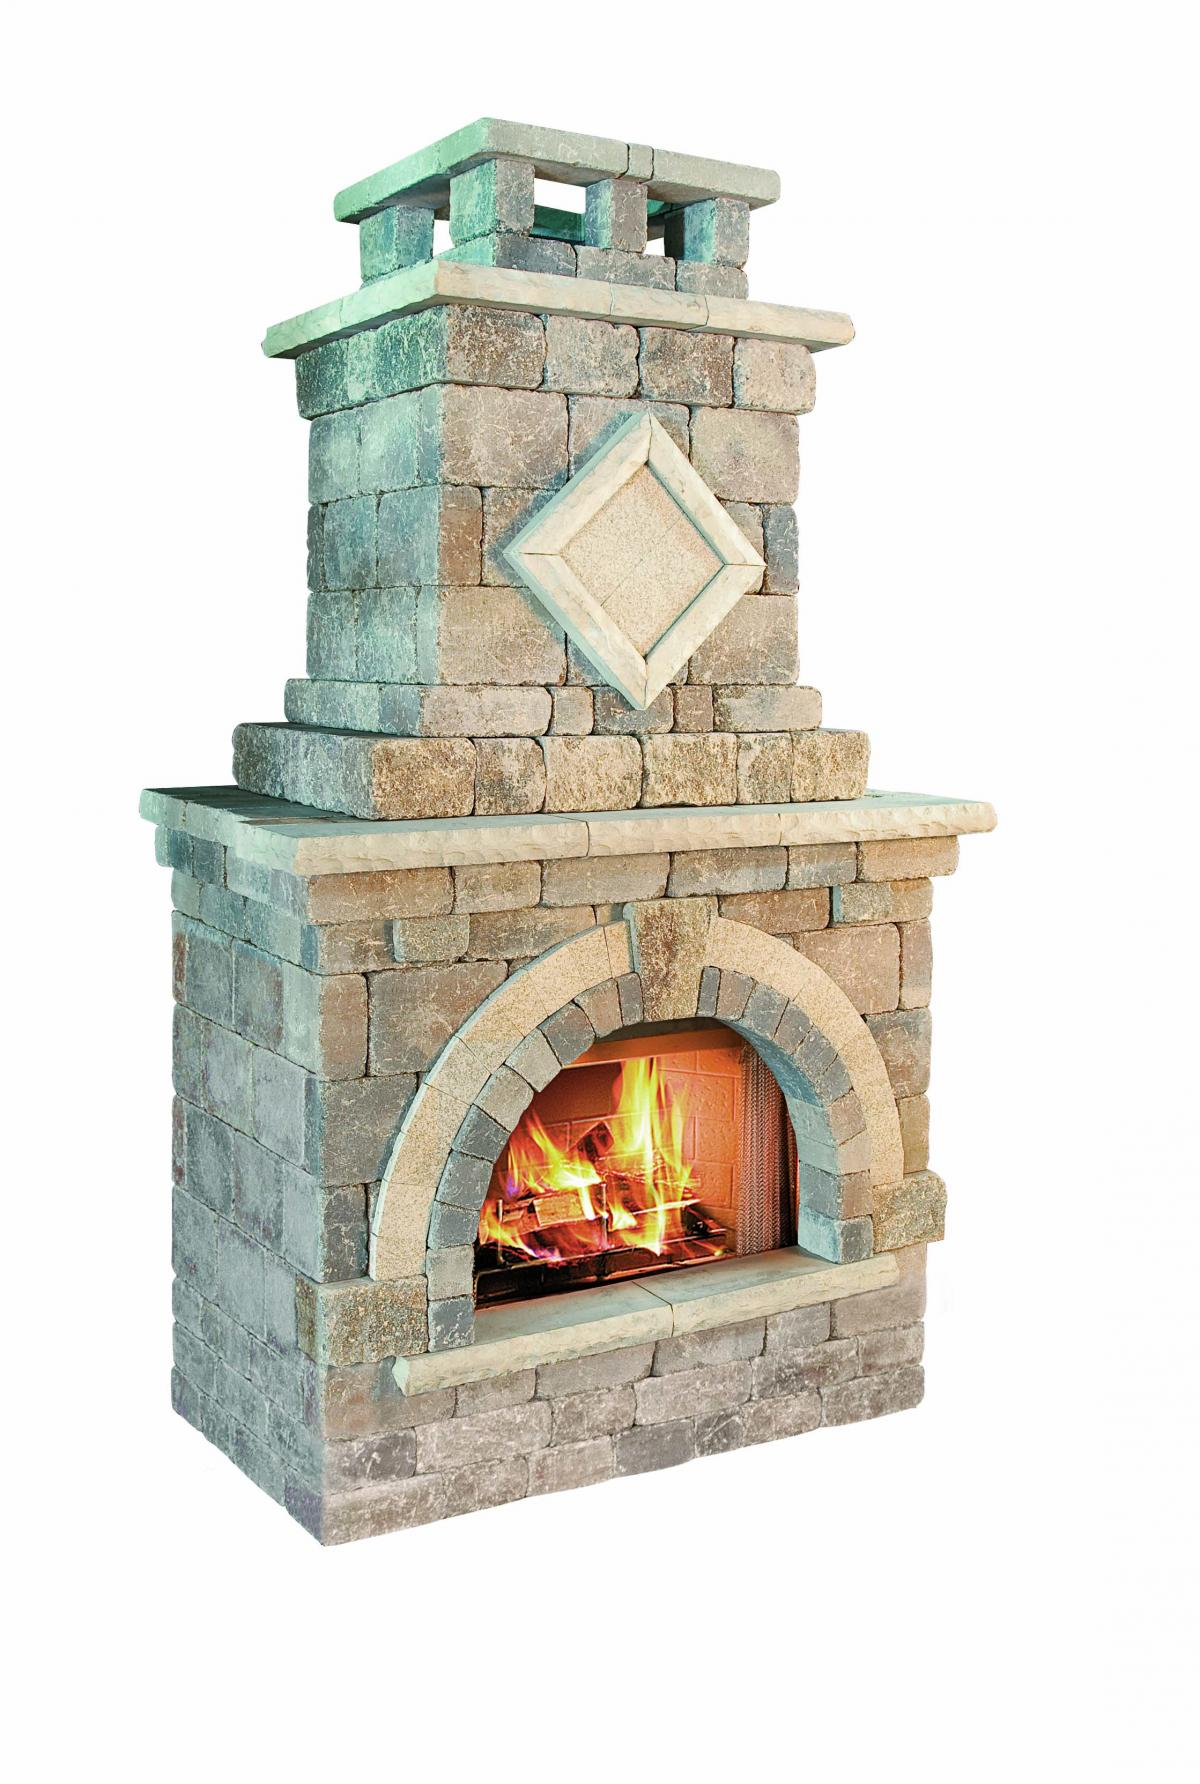 Small Outdoor Fireplace Kits to Pin on Pinterest